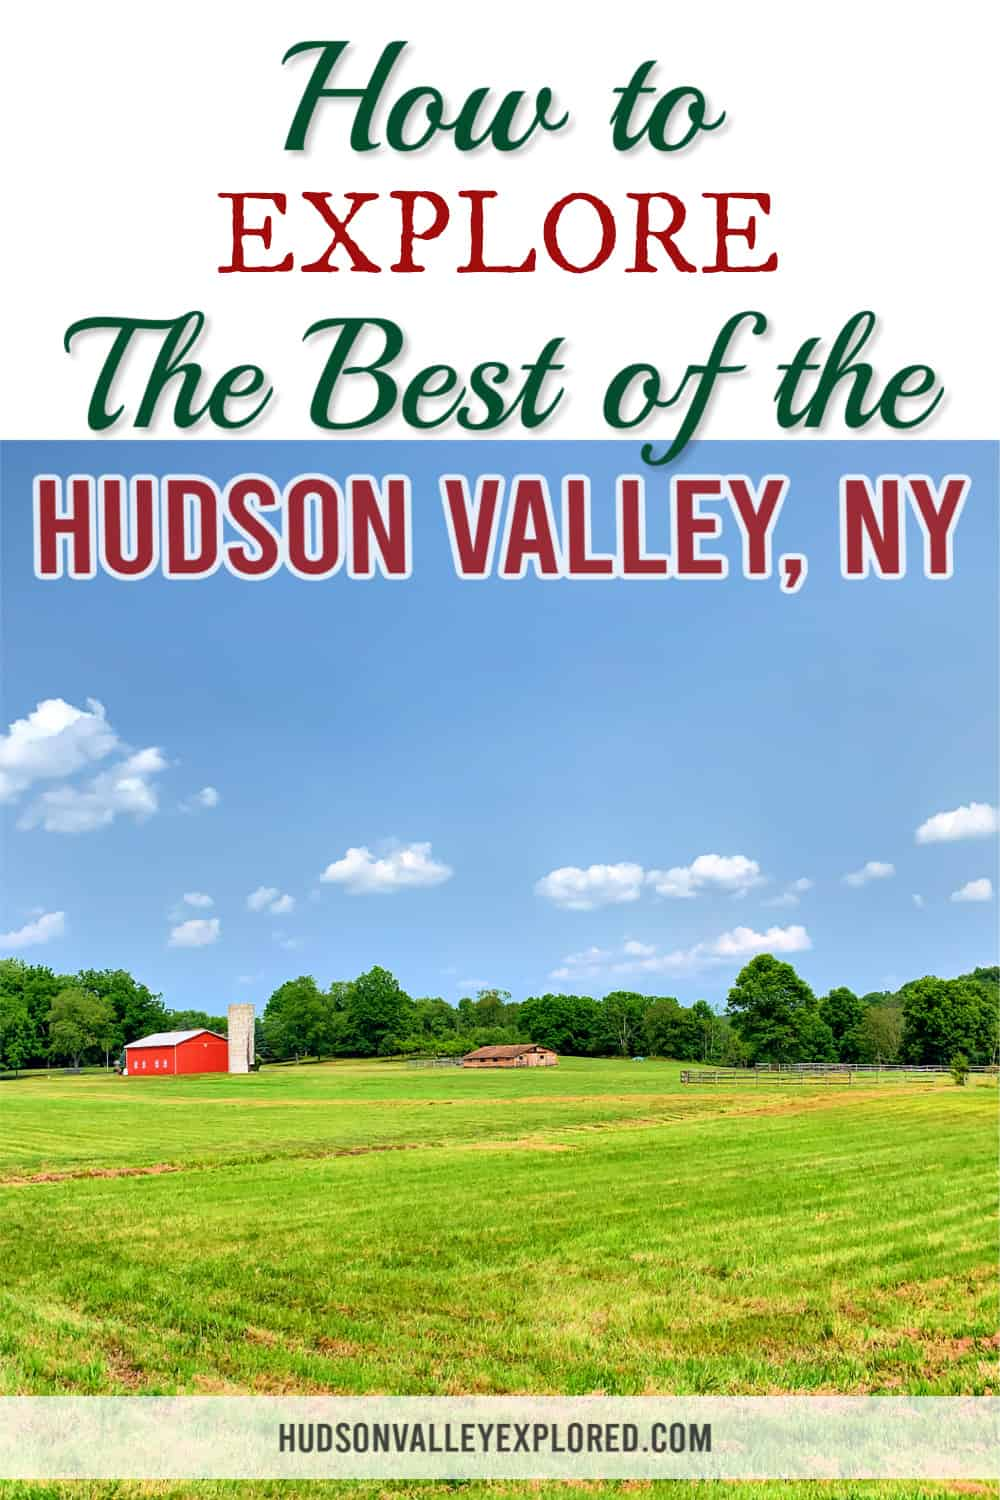 Discover how to explore the best of the Hudson Valley. From taking the train to seeing new and exciting places, the Hudson Valley New York has something for everyone. It is the #1 destination for New York City and is great for a weekend getaway. #newyork #hudsonvalley